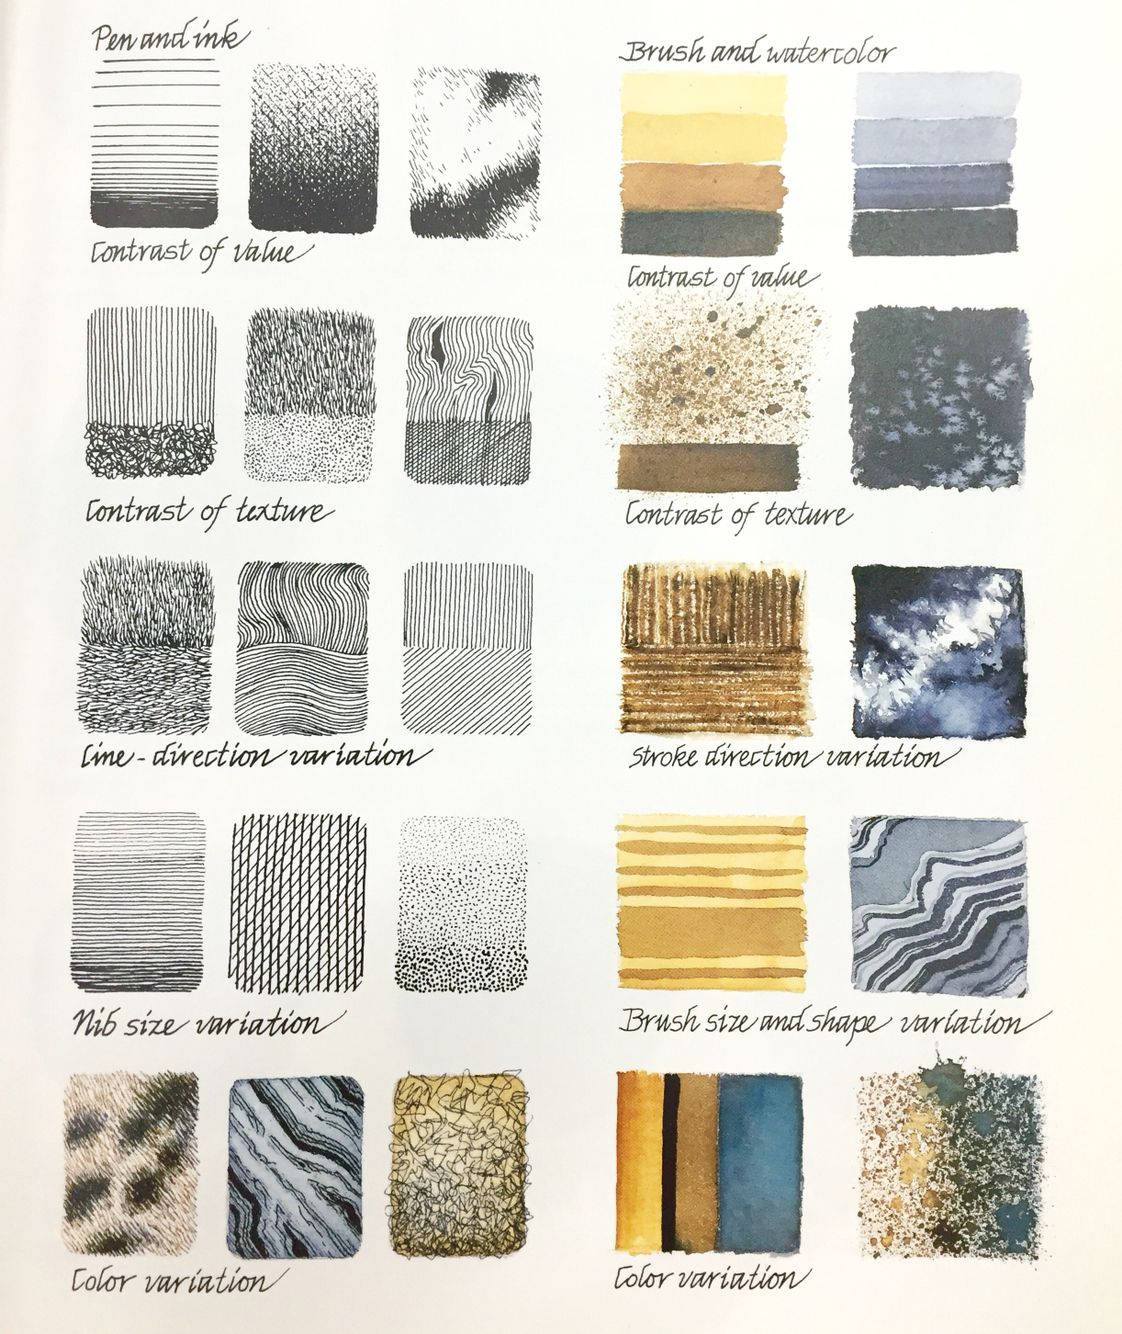 Creating Textures In Pen Amp Inki With Watercolour By